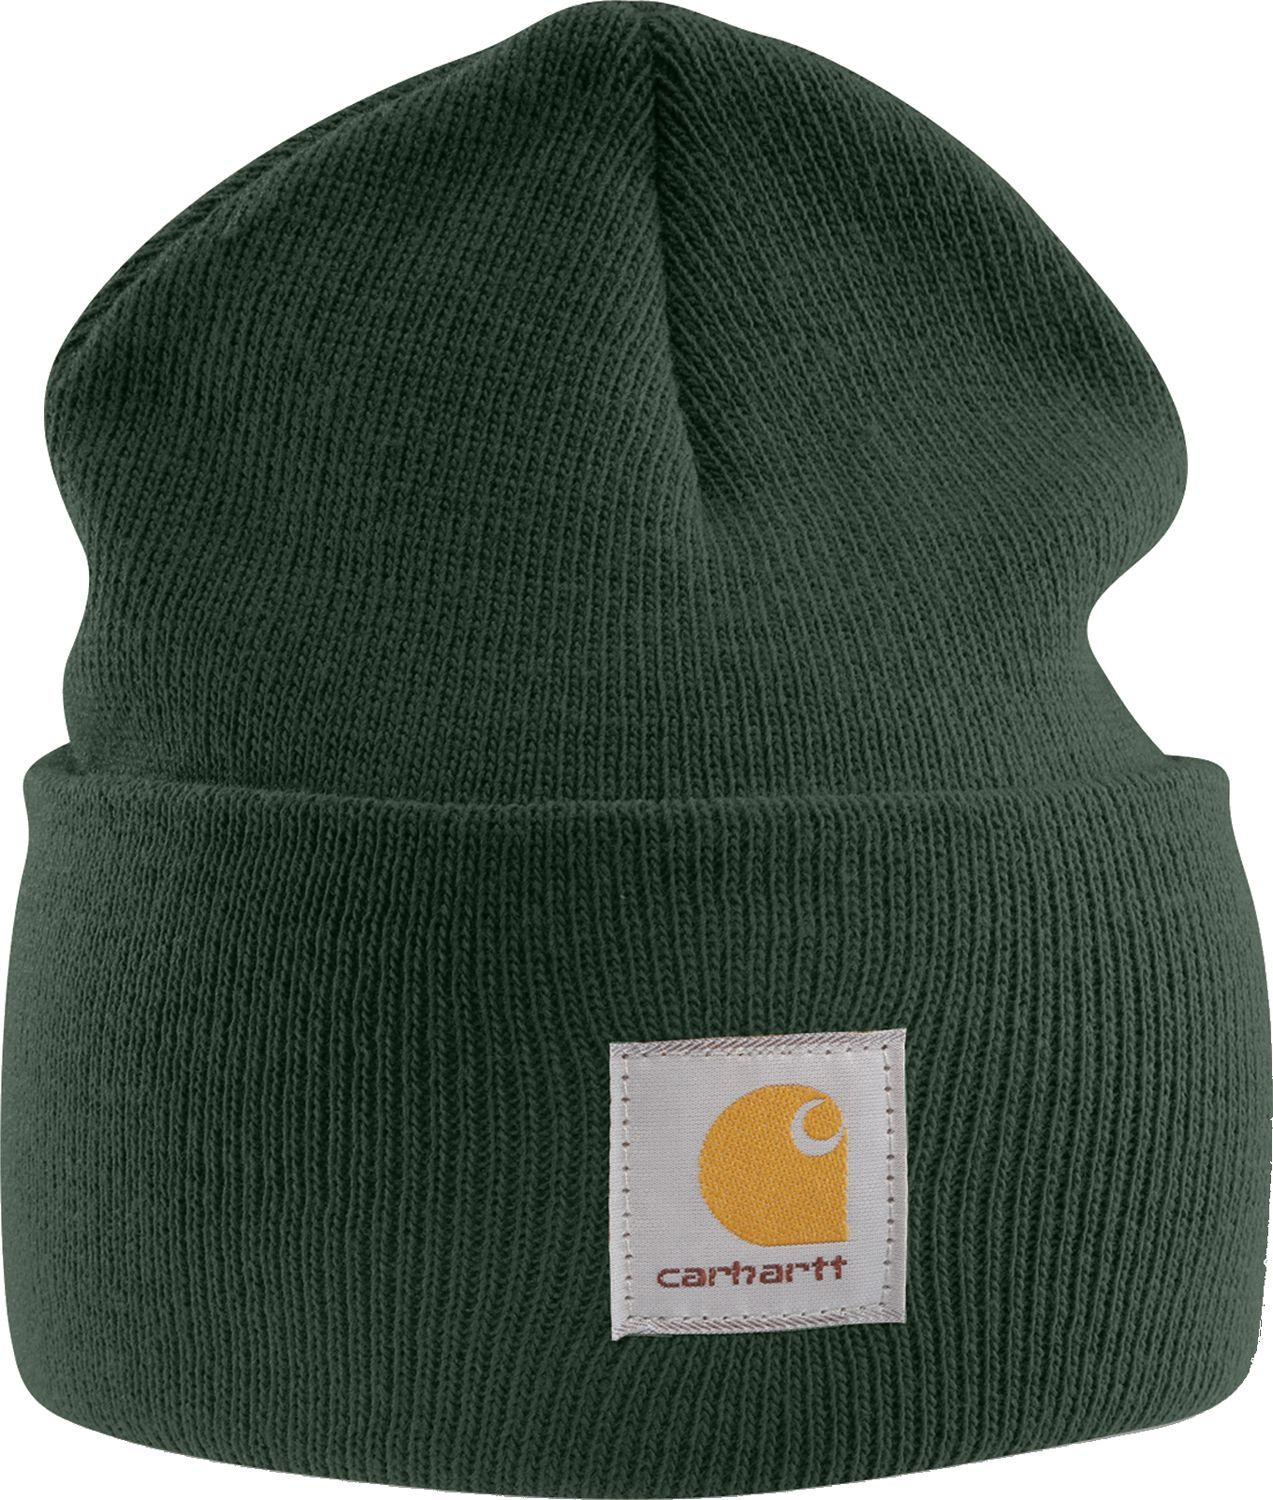 409c5989e Carhartt Men's Knit Watch Cap, Brown in 2019 | Products | Carhartt ...